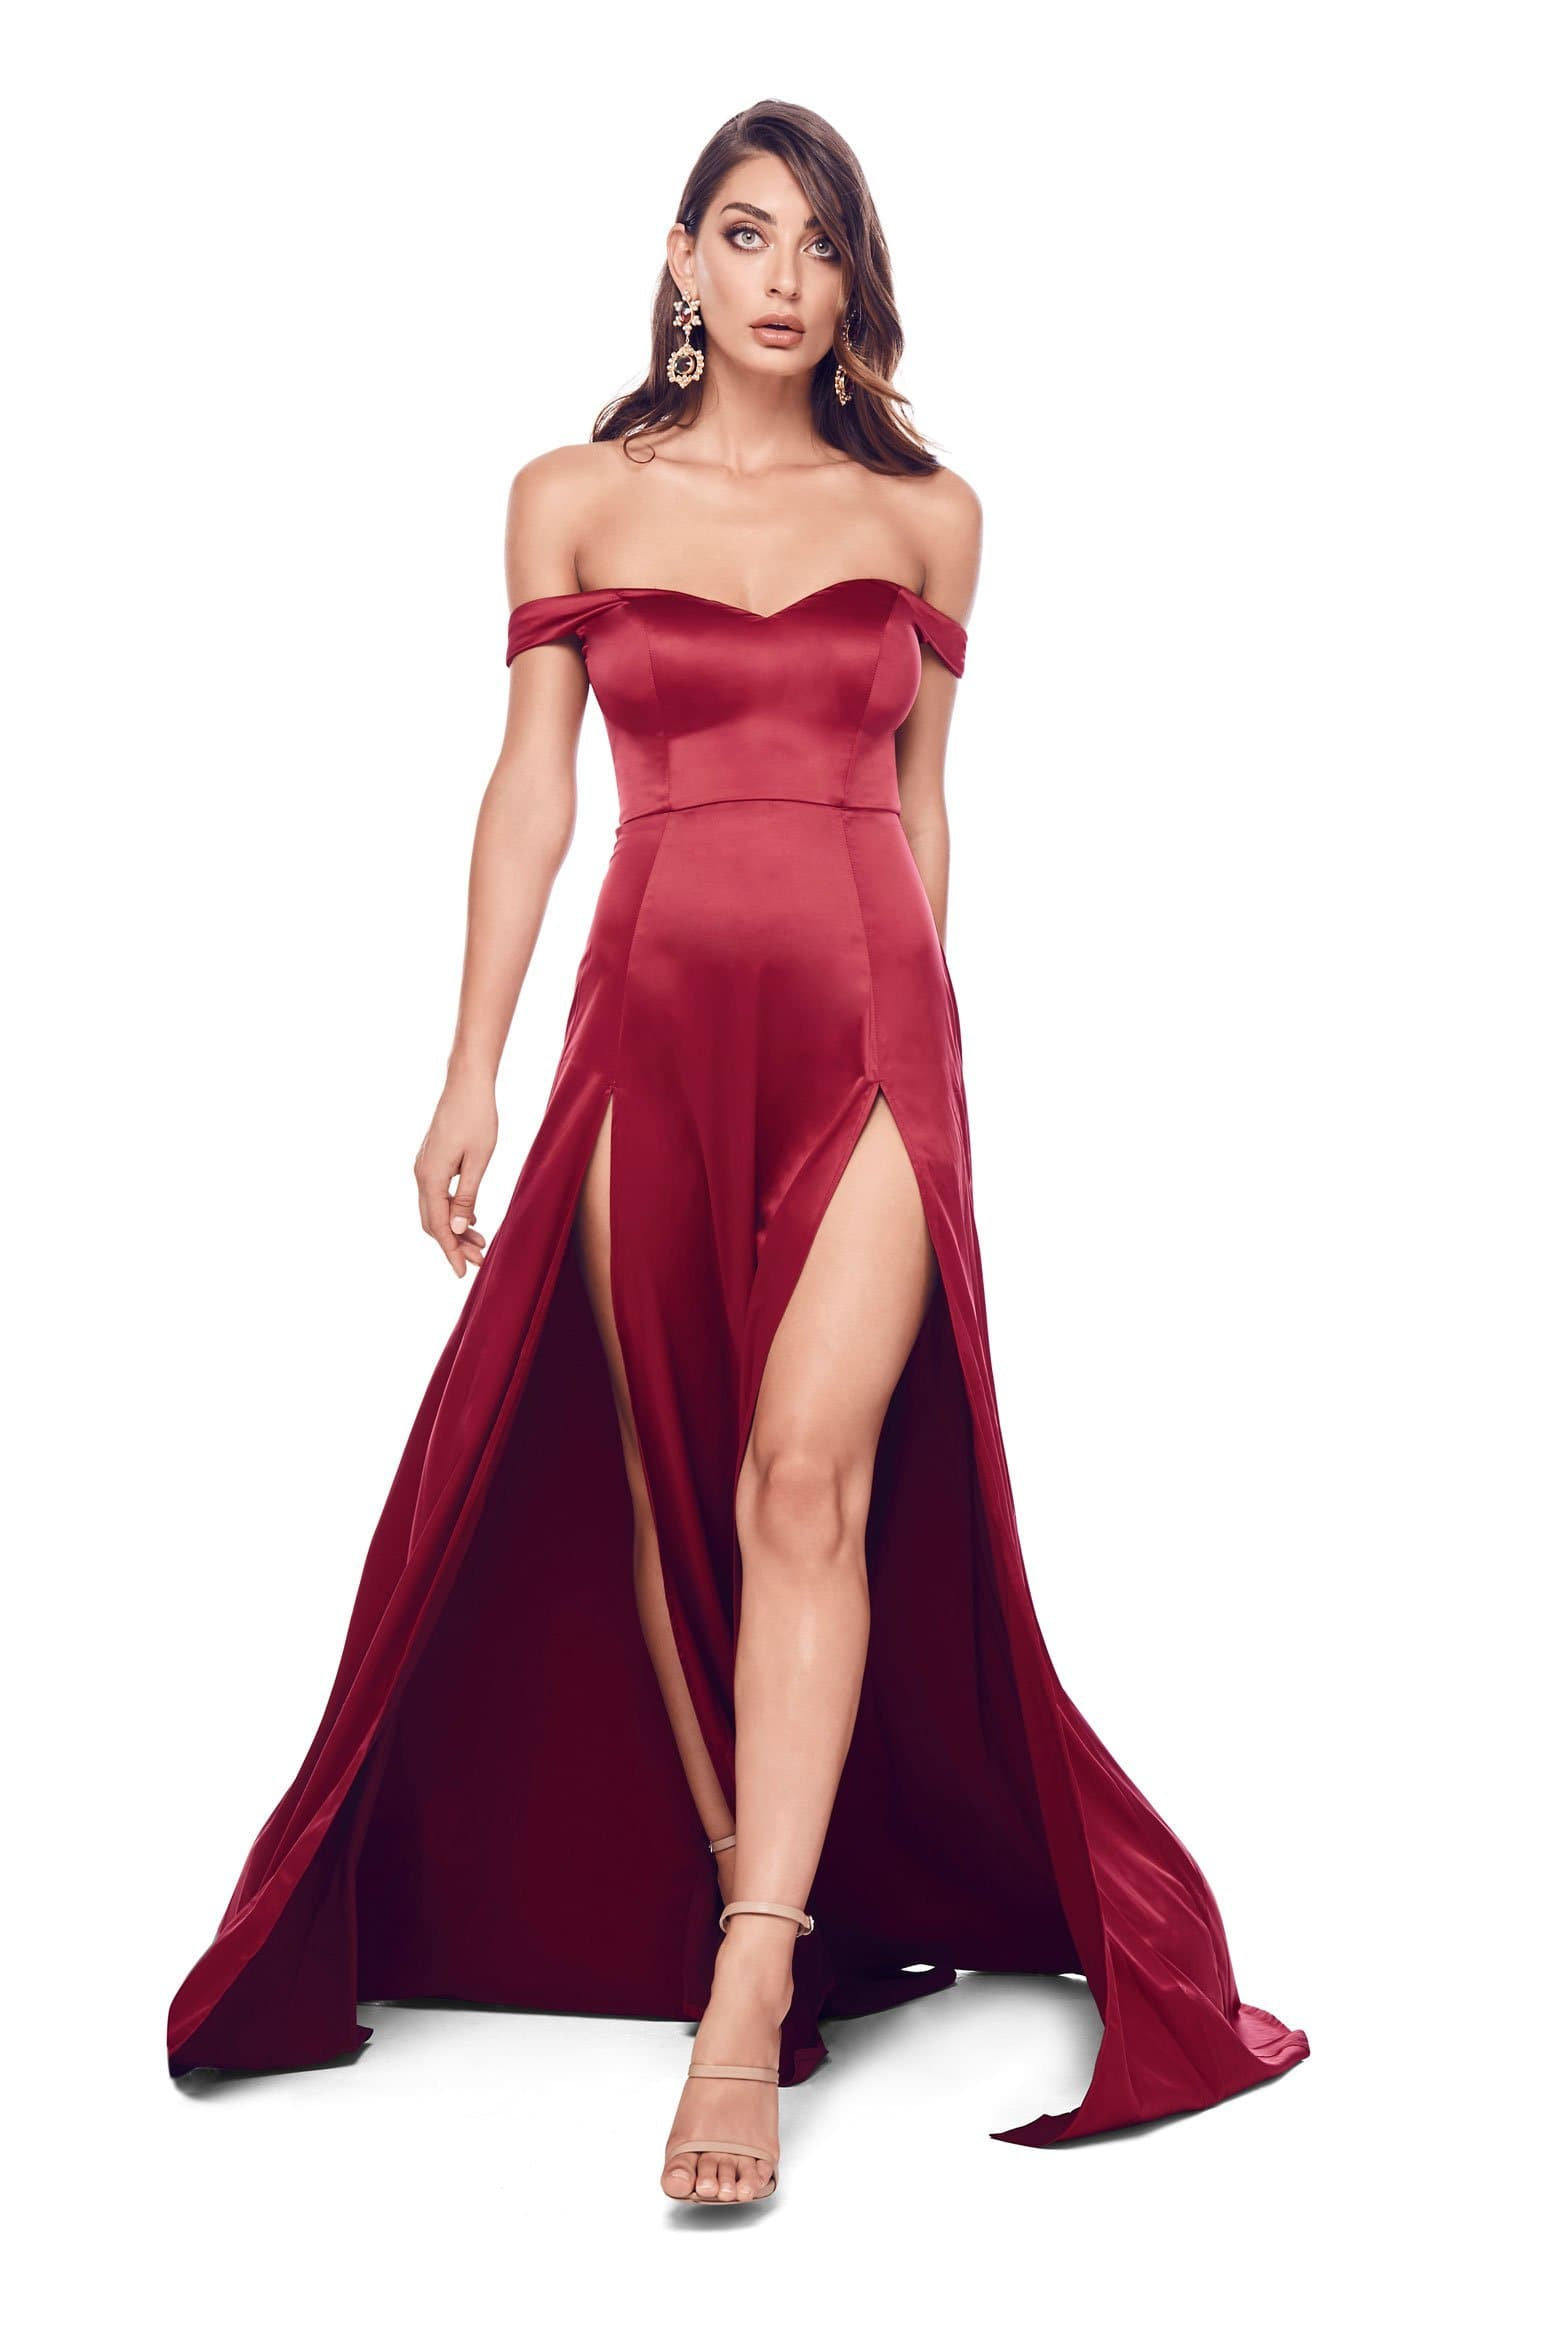 Florentina - Wine Red Satin Sweetheart Off Shoulder Two Split Gown